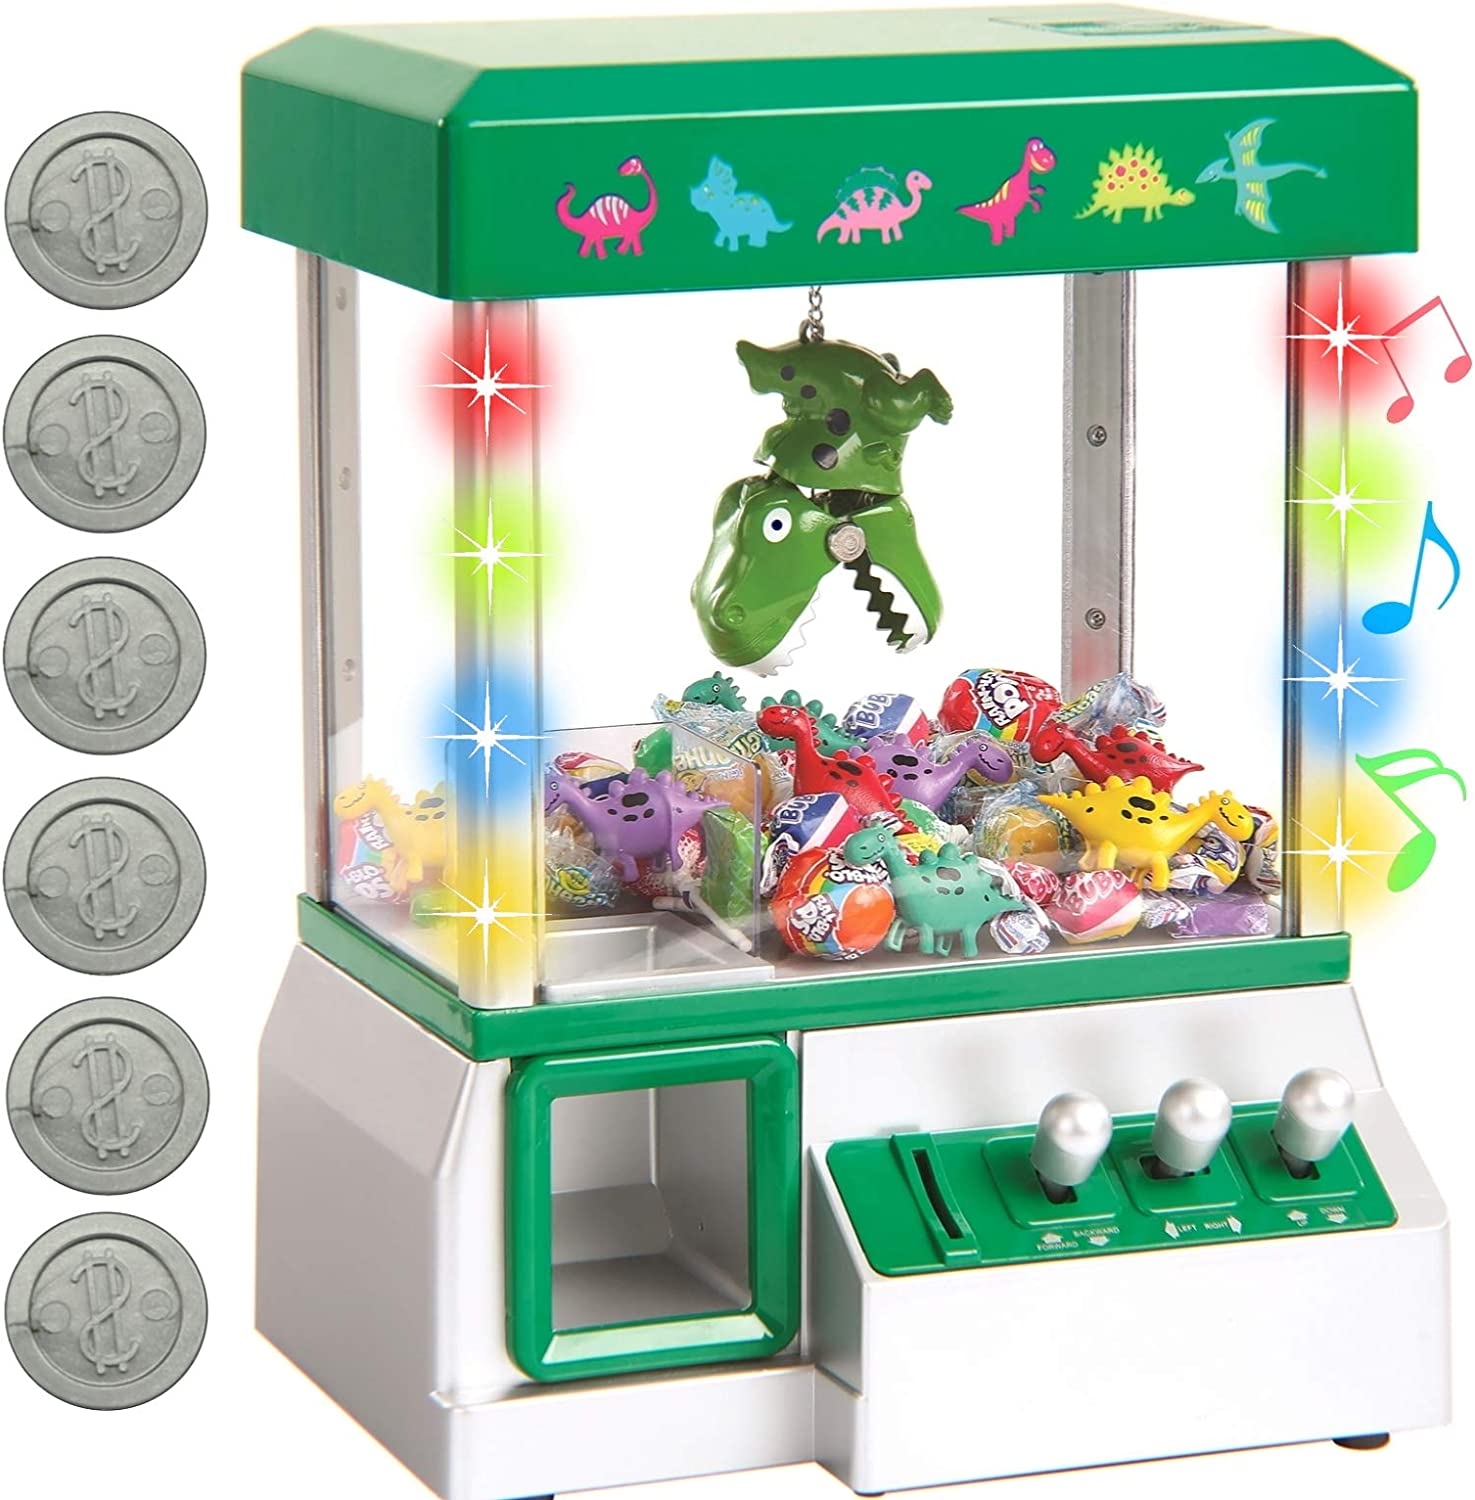 Bundaloo Claw Machine Arcade Game Candy Grabber & Prize Dispenser Vending Toy for Kids with Lights Sound & Mini Dinosaurs (Green Dinosaur)